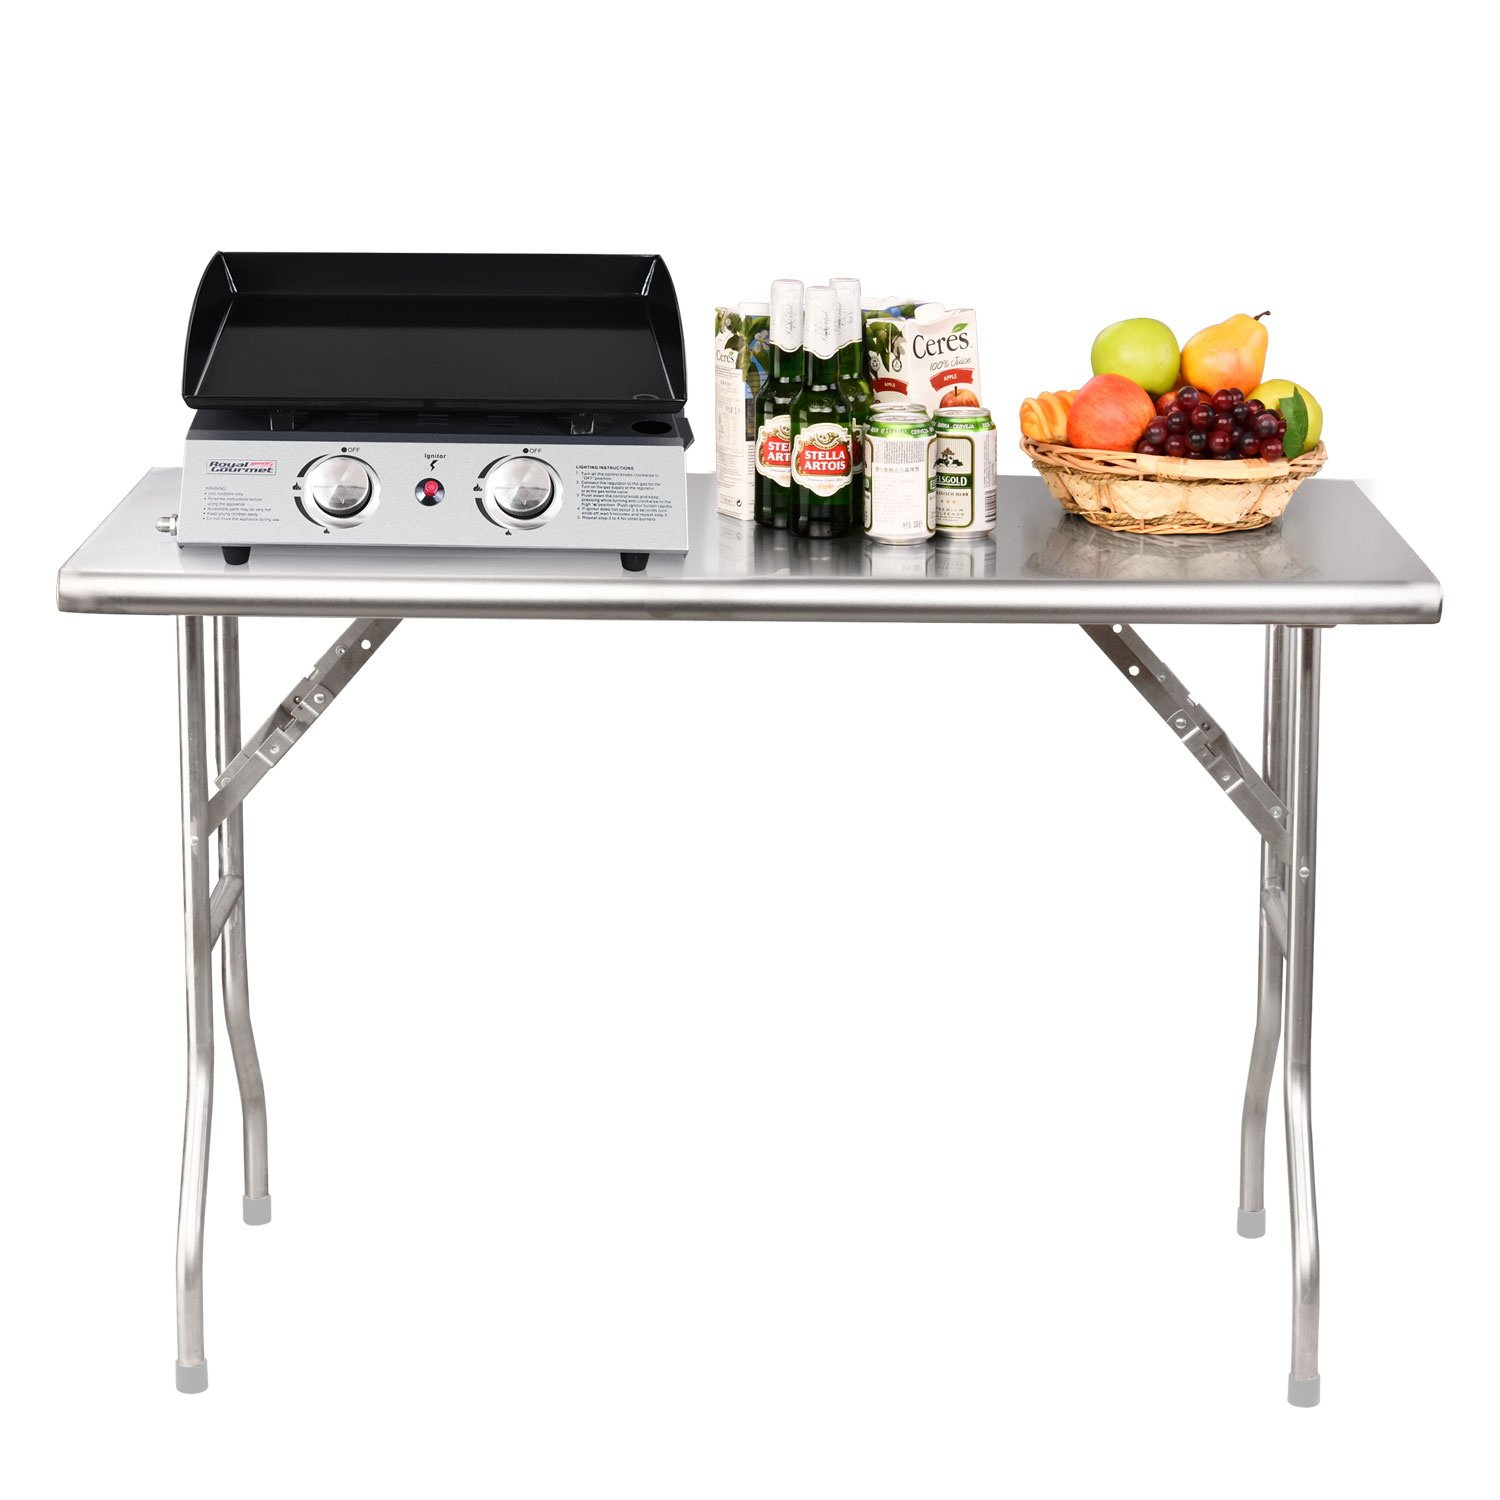 Royal Gourmet Stainless Steel Folding Work Table, 48'' L x 24'' W by Royal Gourmet (Image #9)